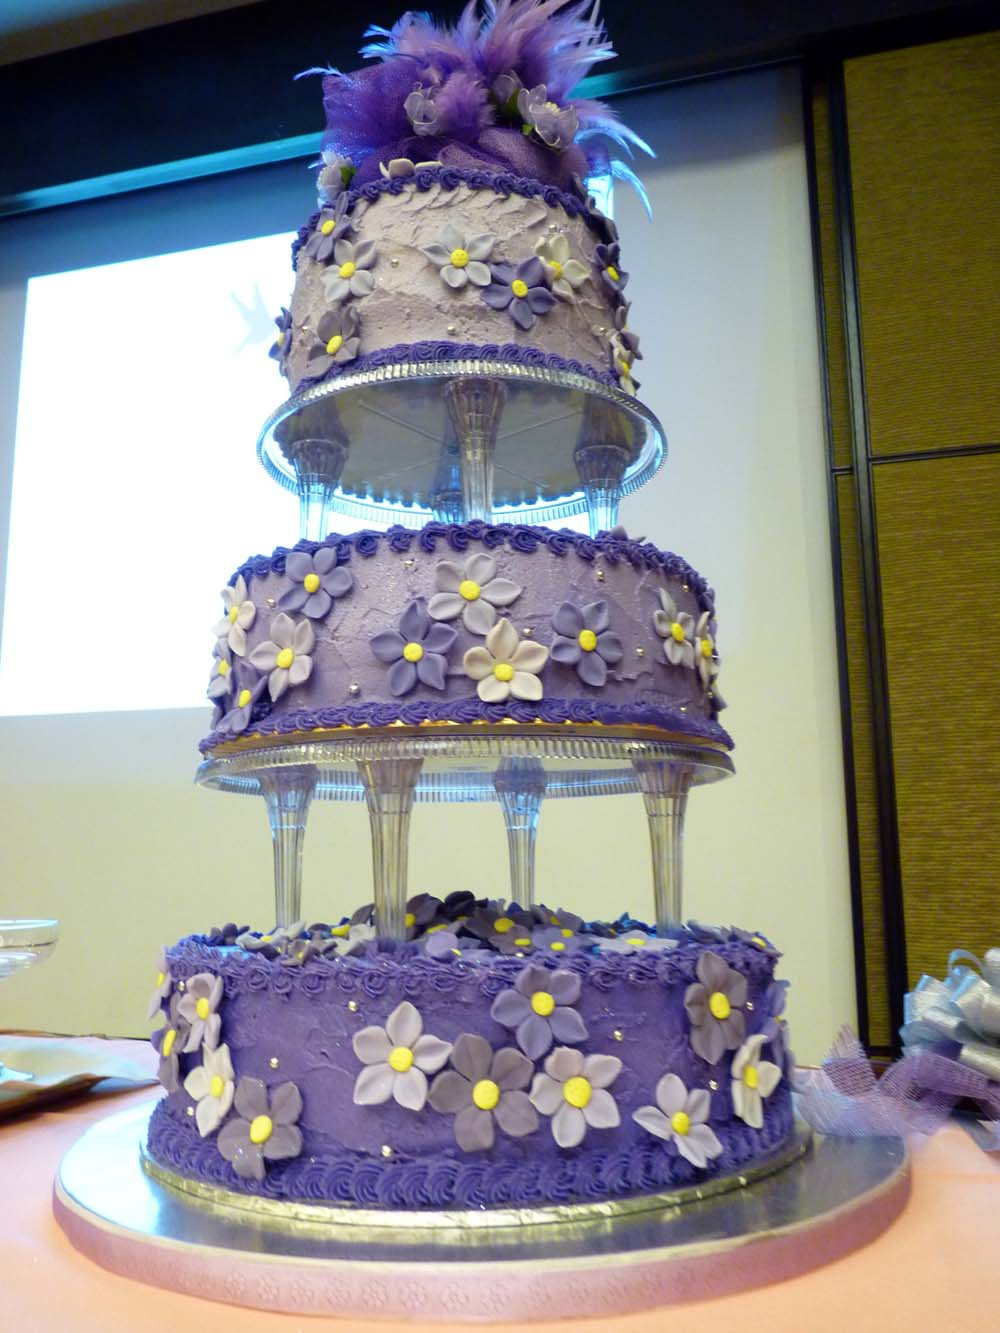 THE BEST CAKES IN TOWN: A Purple Wedding Cake